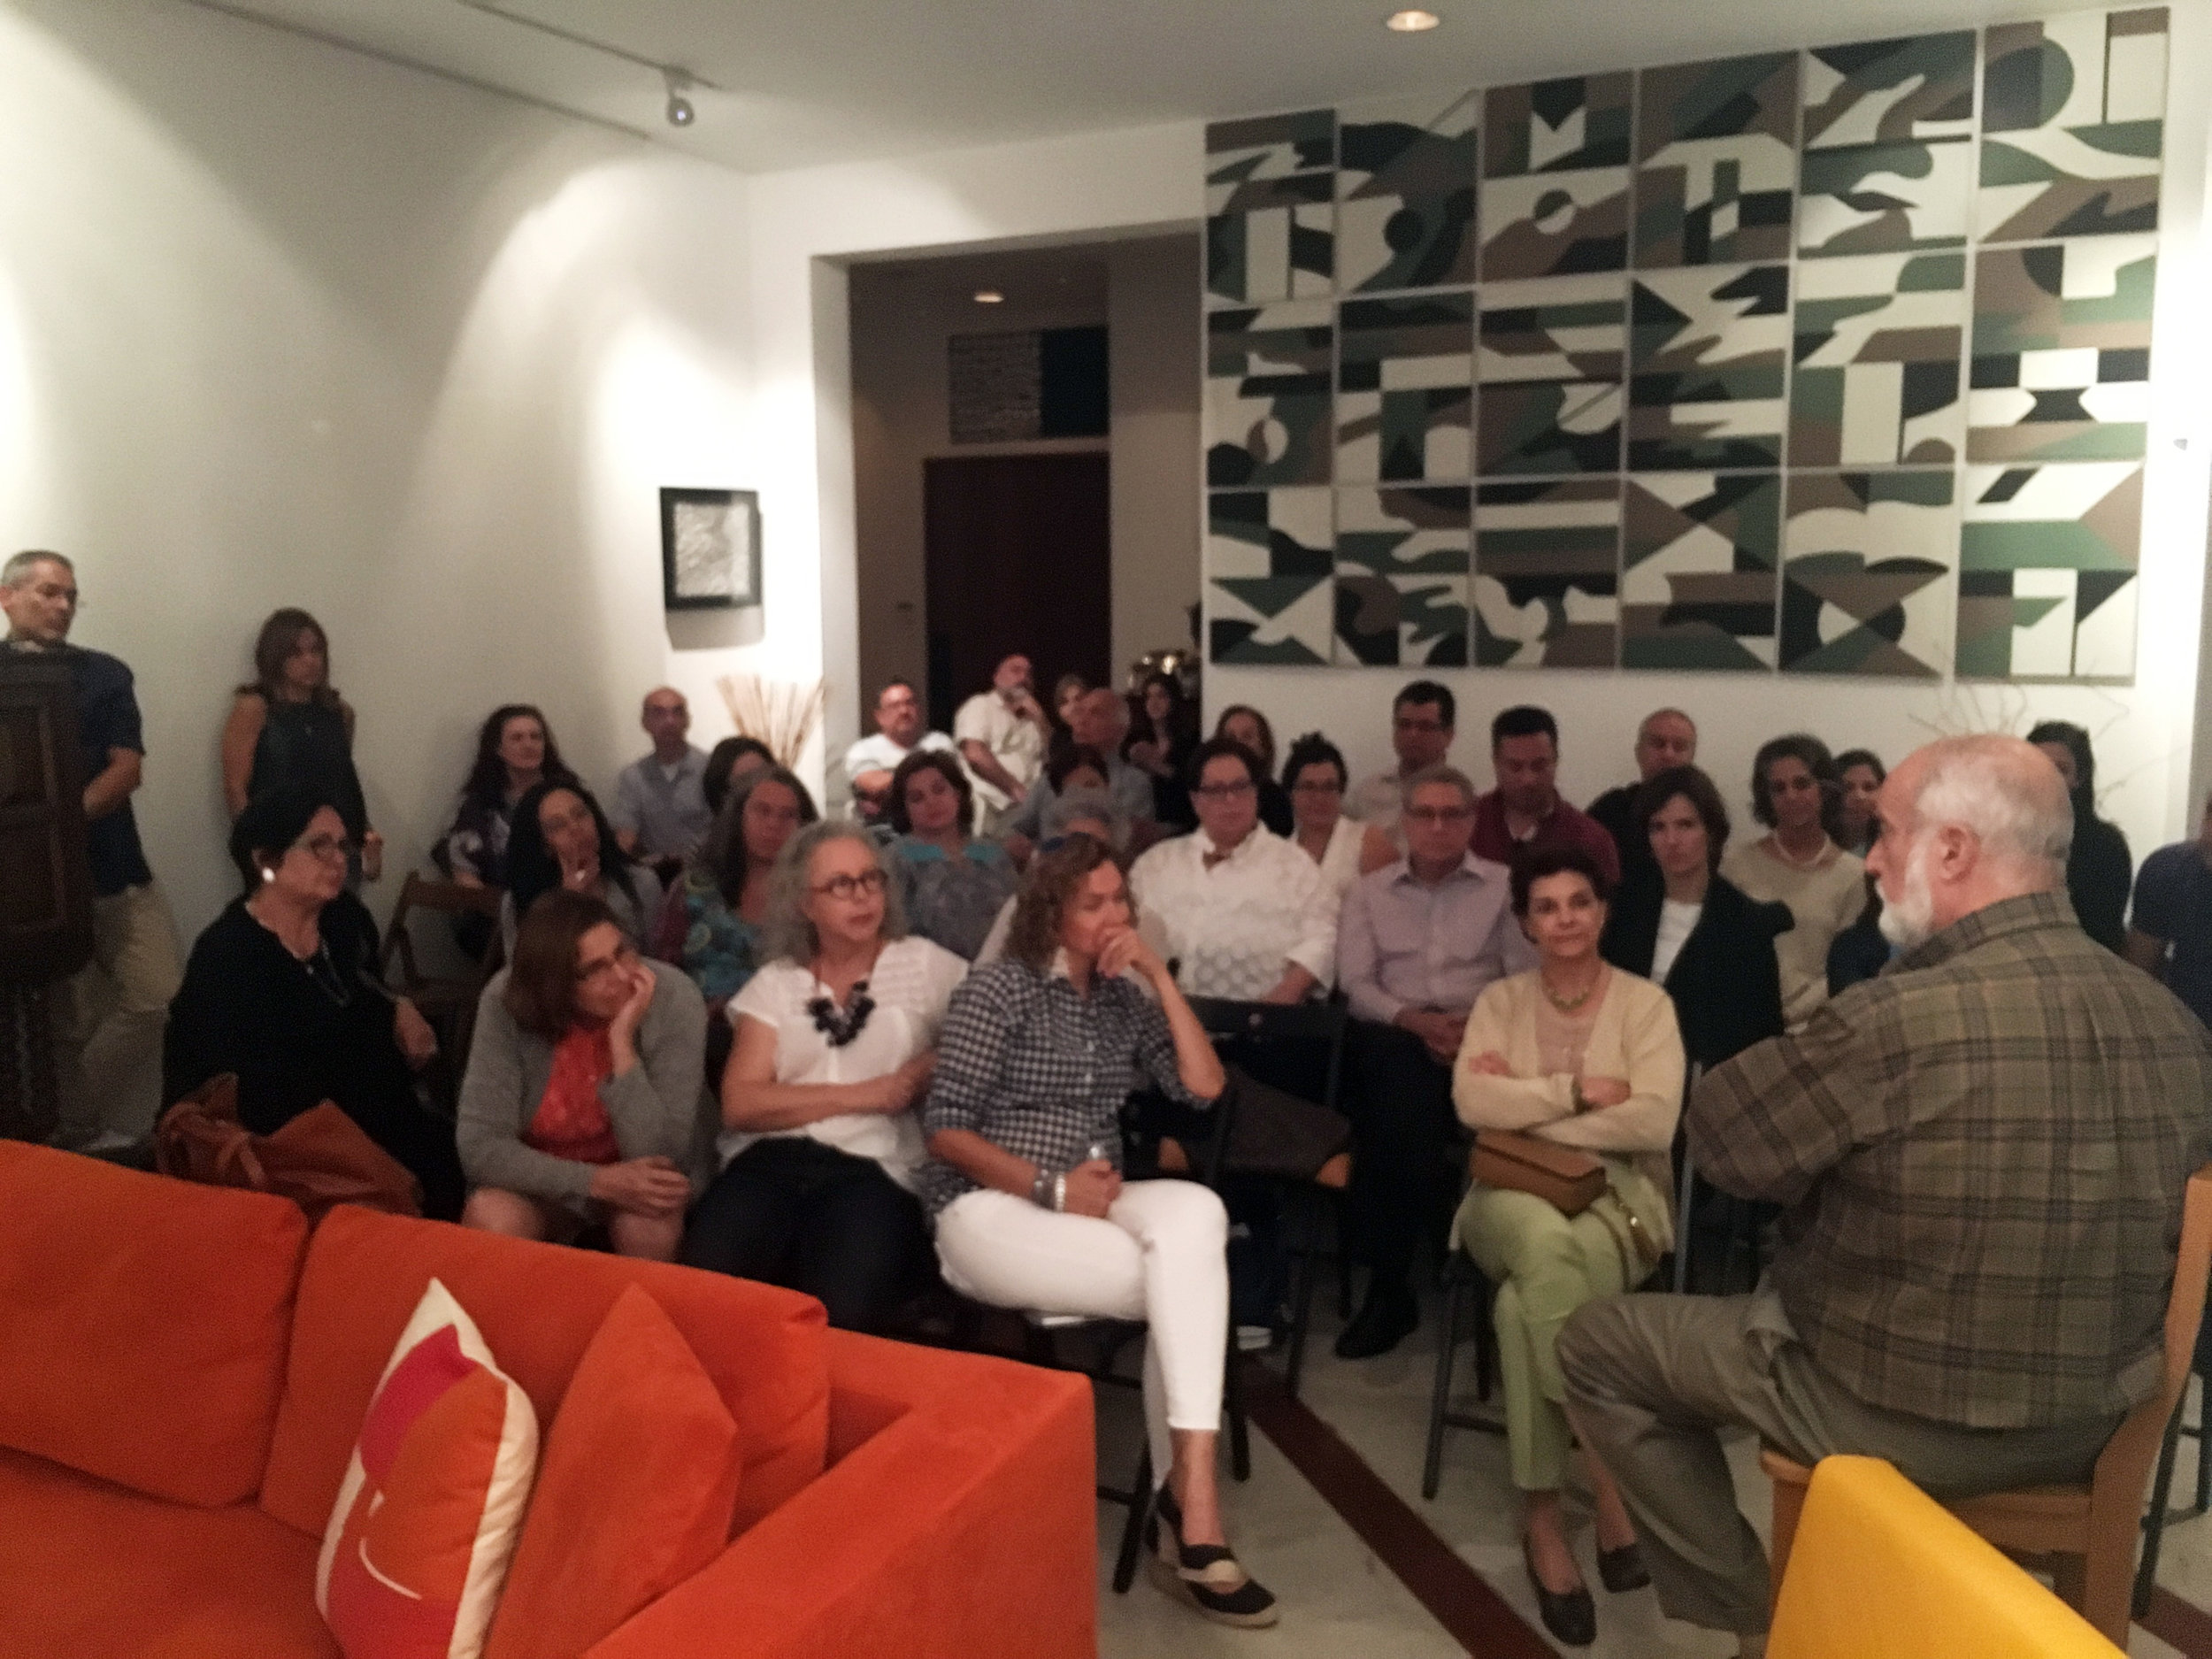 Encuentro con Dr. Himiob - A group of 40 guests attended the screening and discussion of The Embrace of the Serpent led by Dr. Gonzalo Himiob. The discussion followed cultural narratives in the film that are applicable to the situation in Venezuela today.